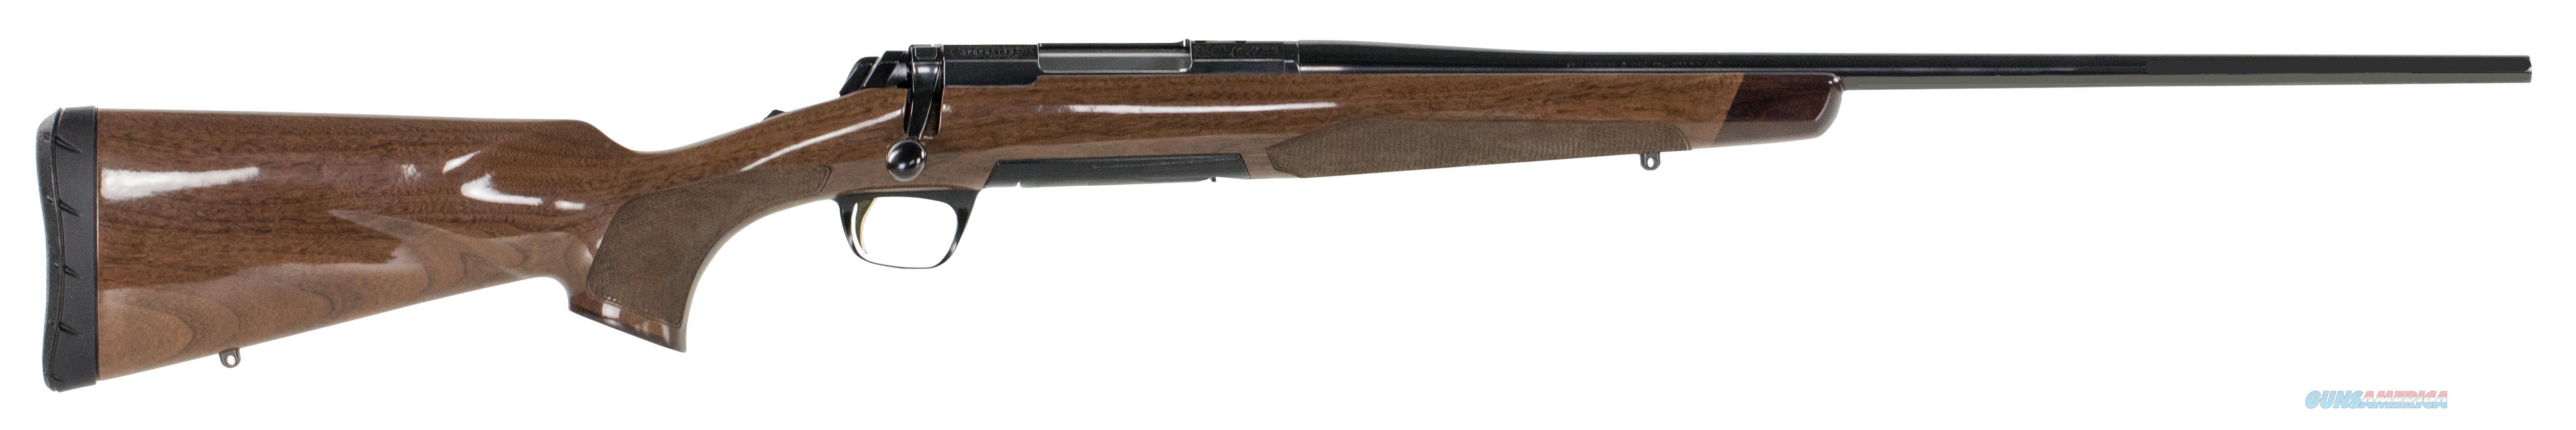 "BROWNING X-BOLT MED 300 26"" 035200229  Guns > Rifles > Browning Rifles > Bolt Action"